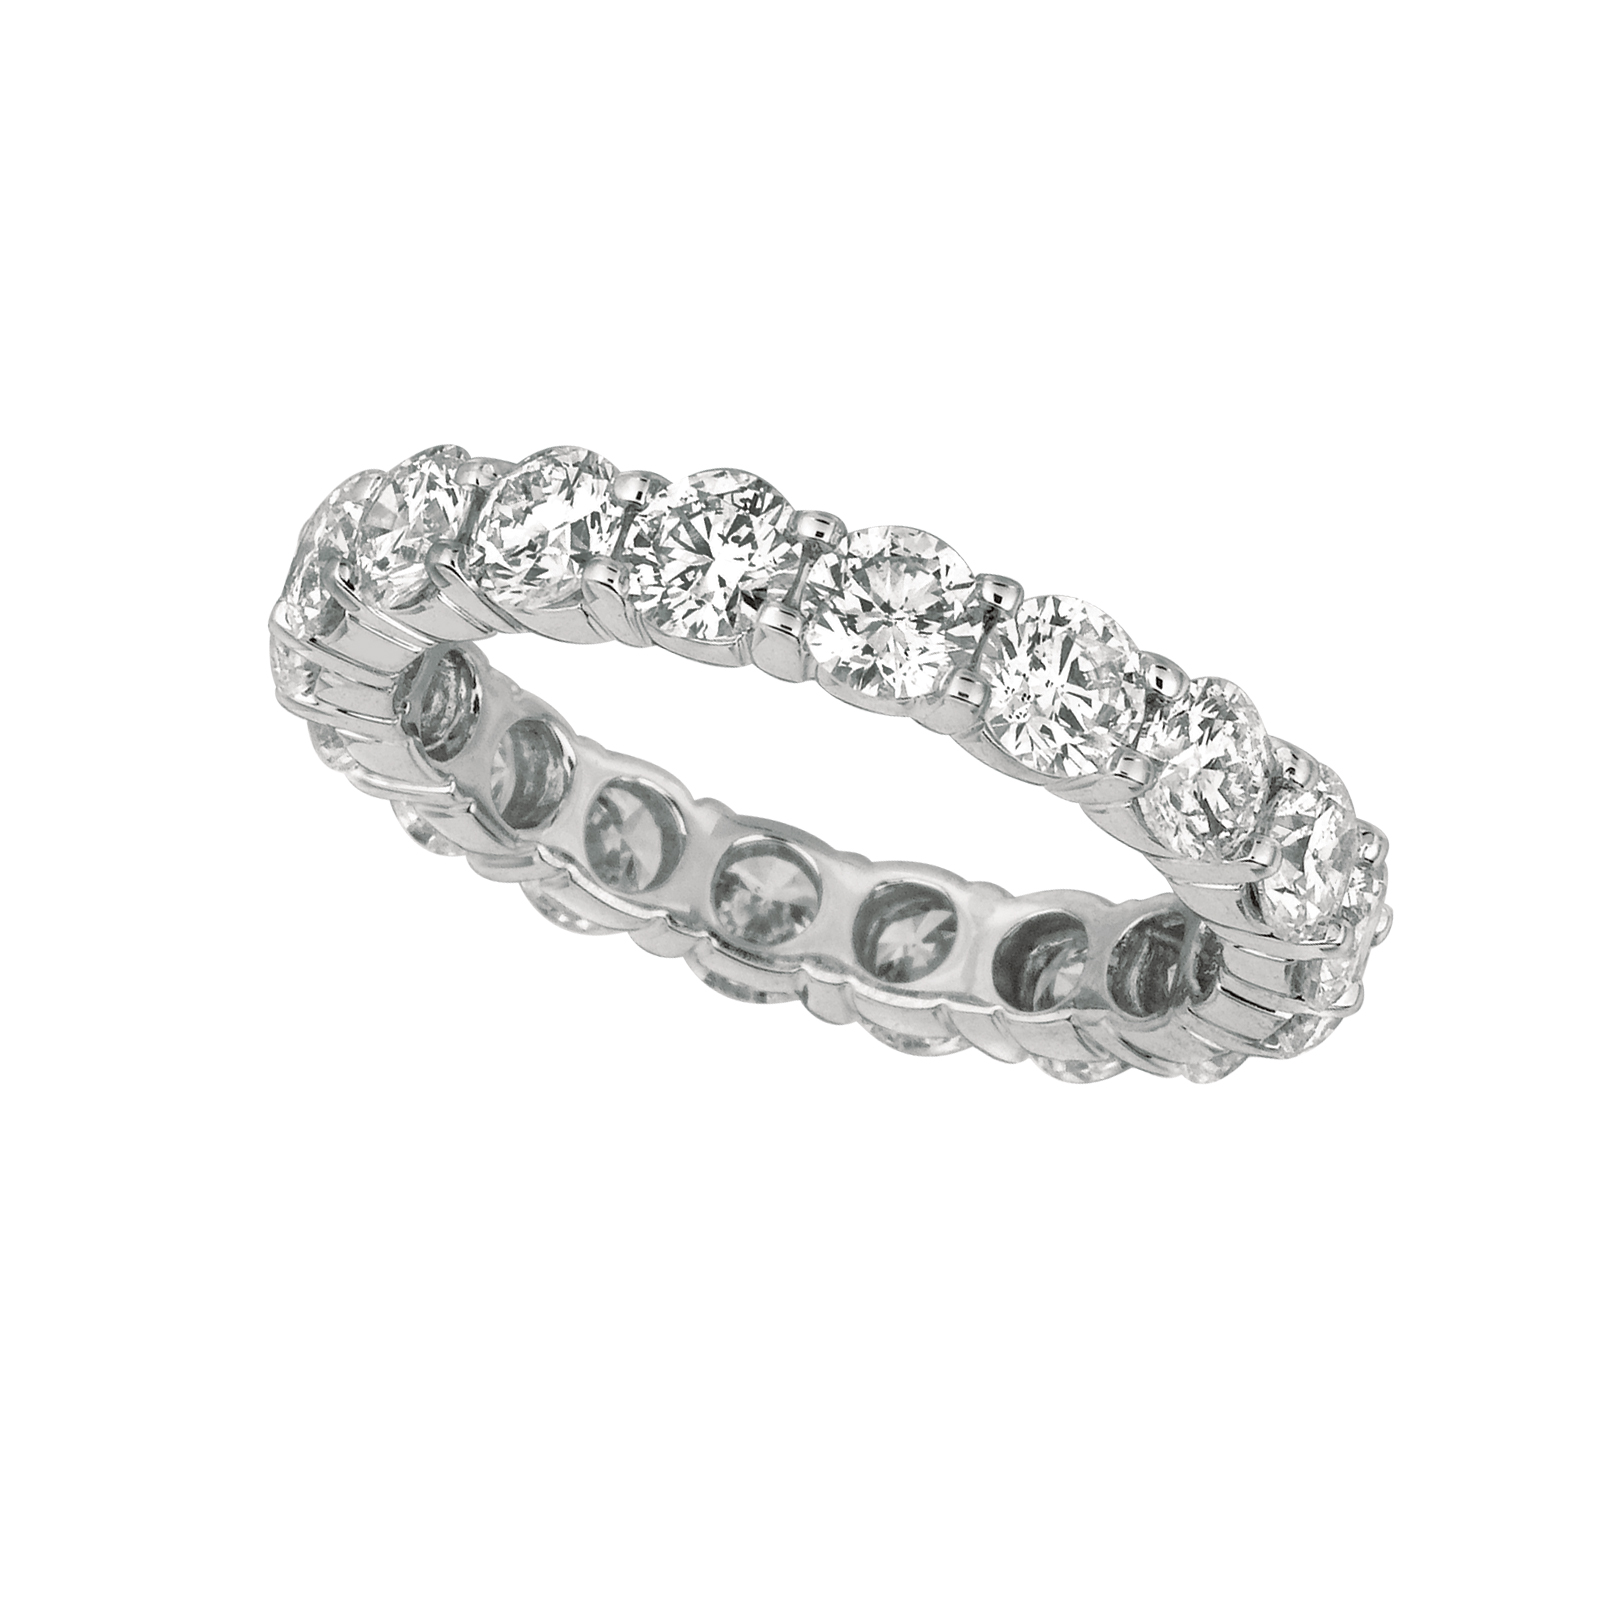 products blackdiamond wg eternityband ef ring eternity black collection diamond band bands